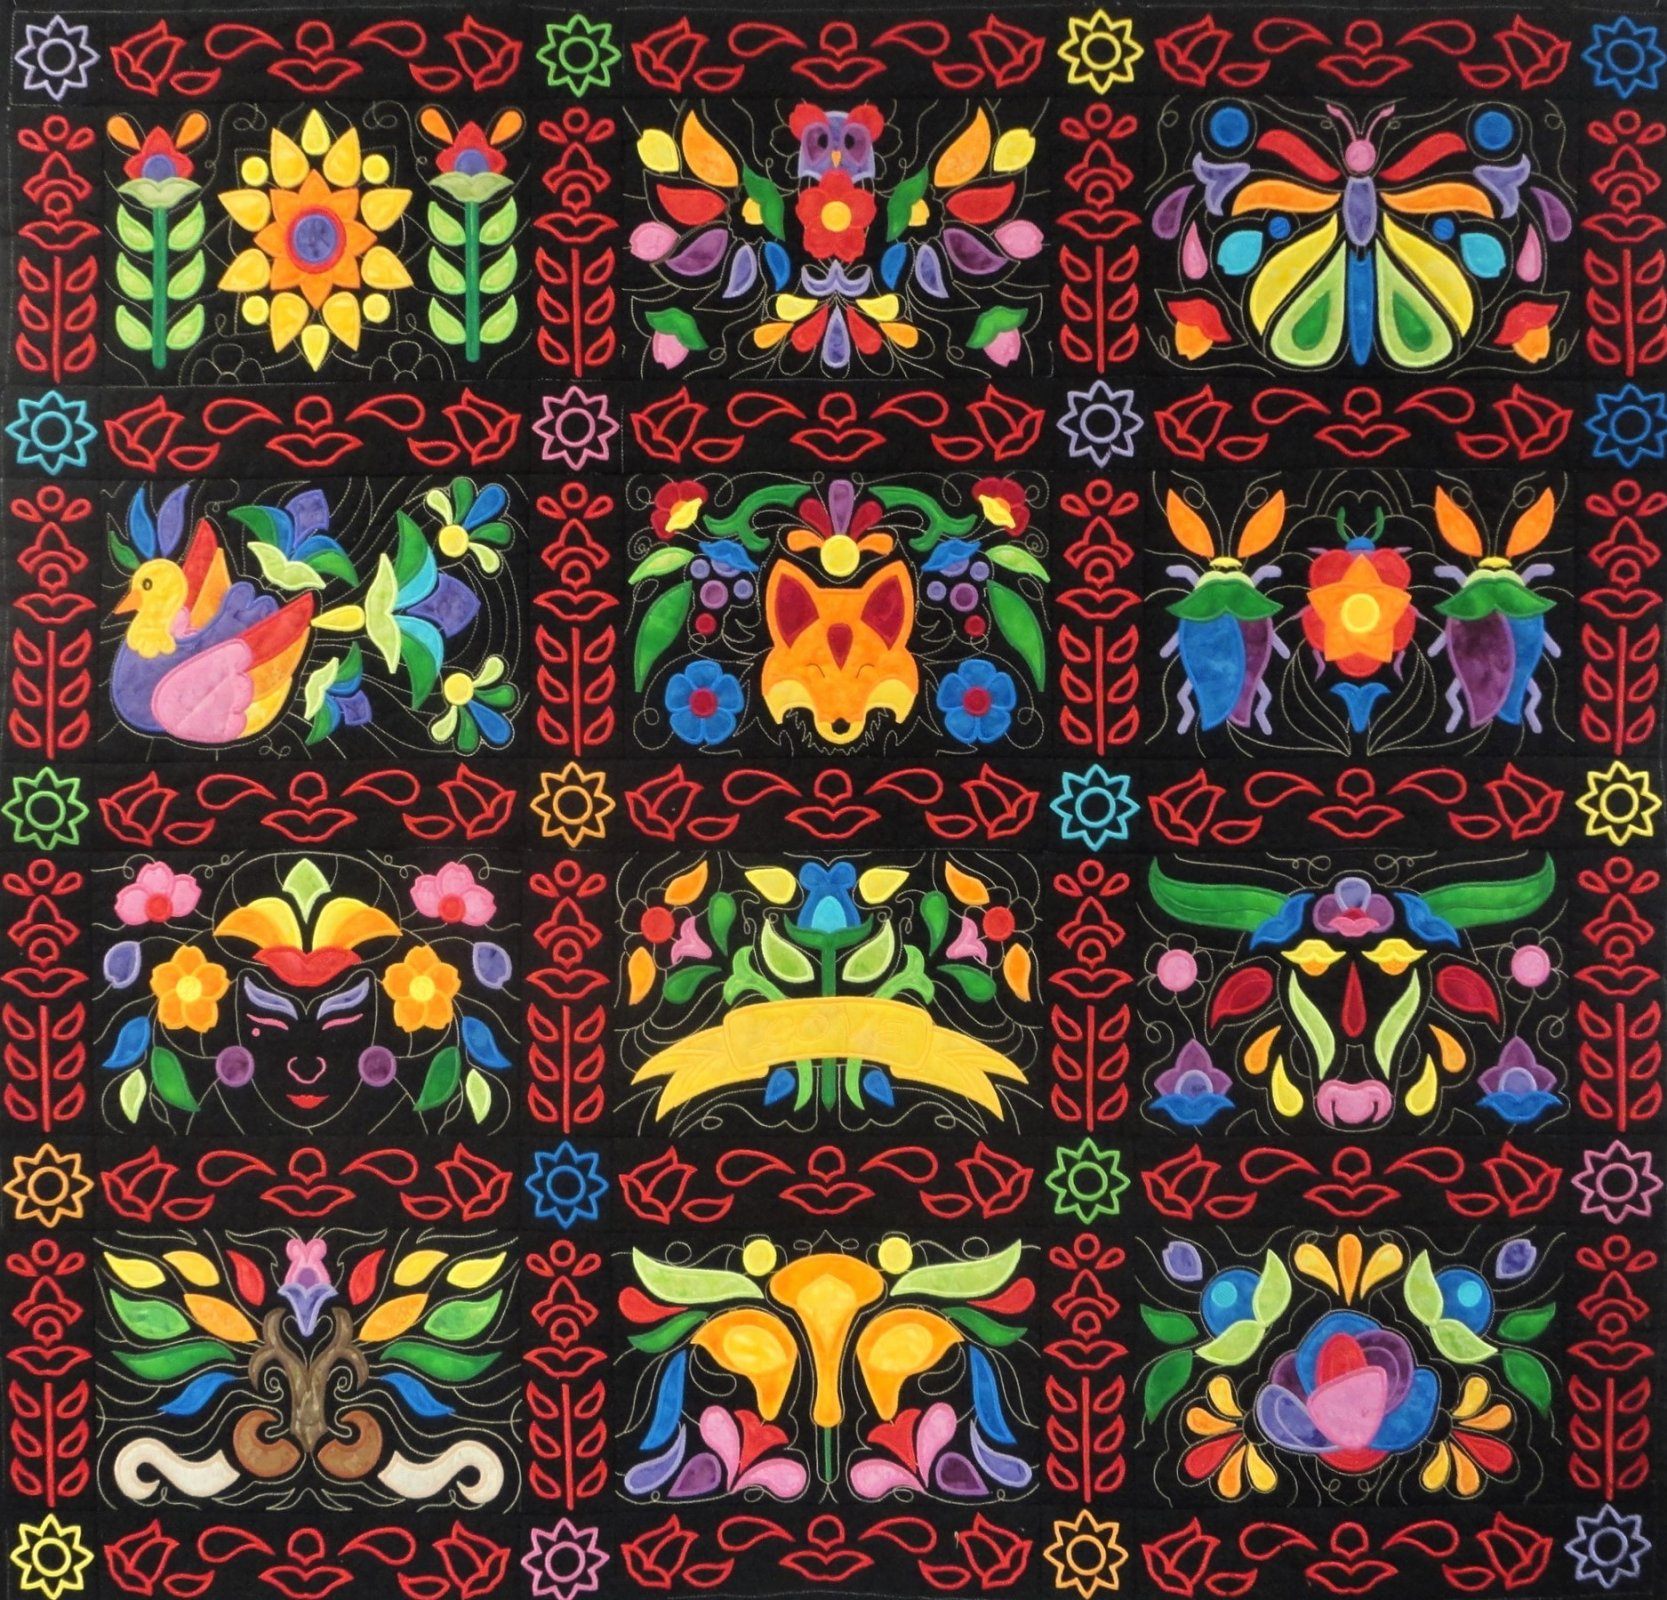 Embroidered Applique quilt